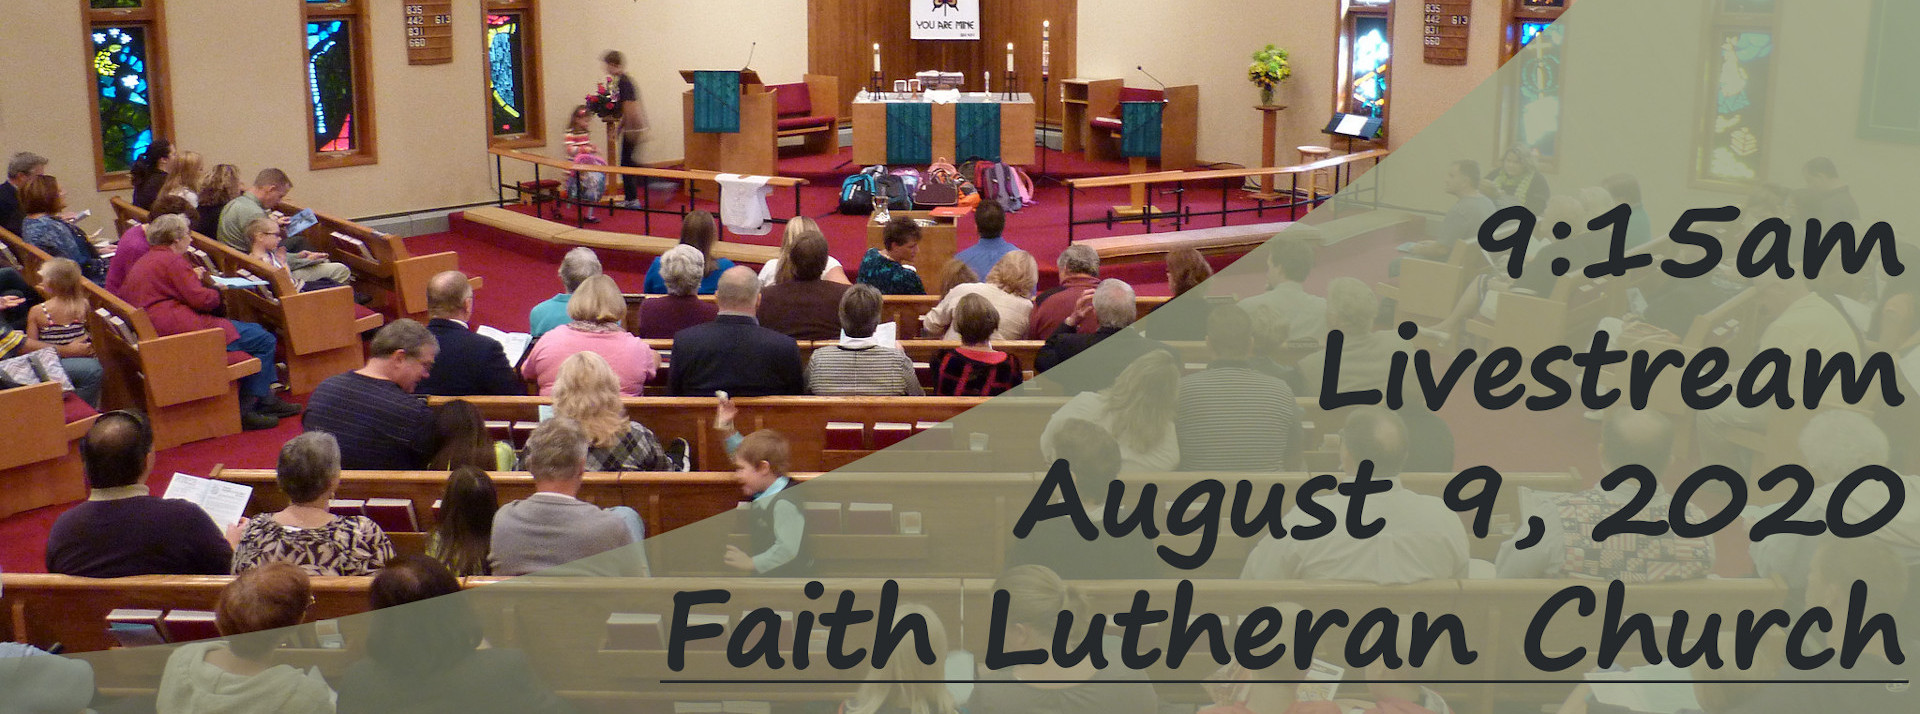 YouTube Live Stream of Sunday Service, August 9